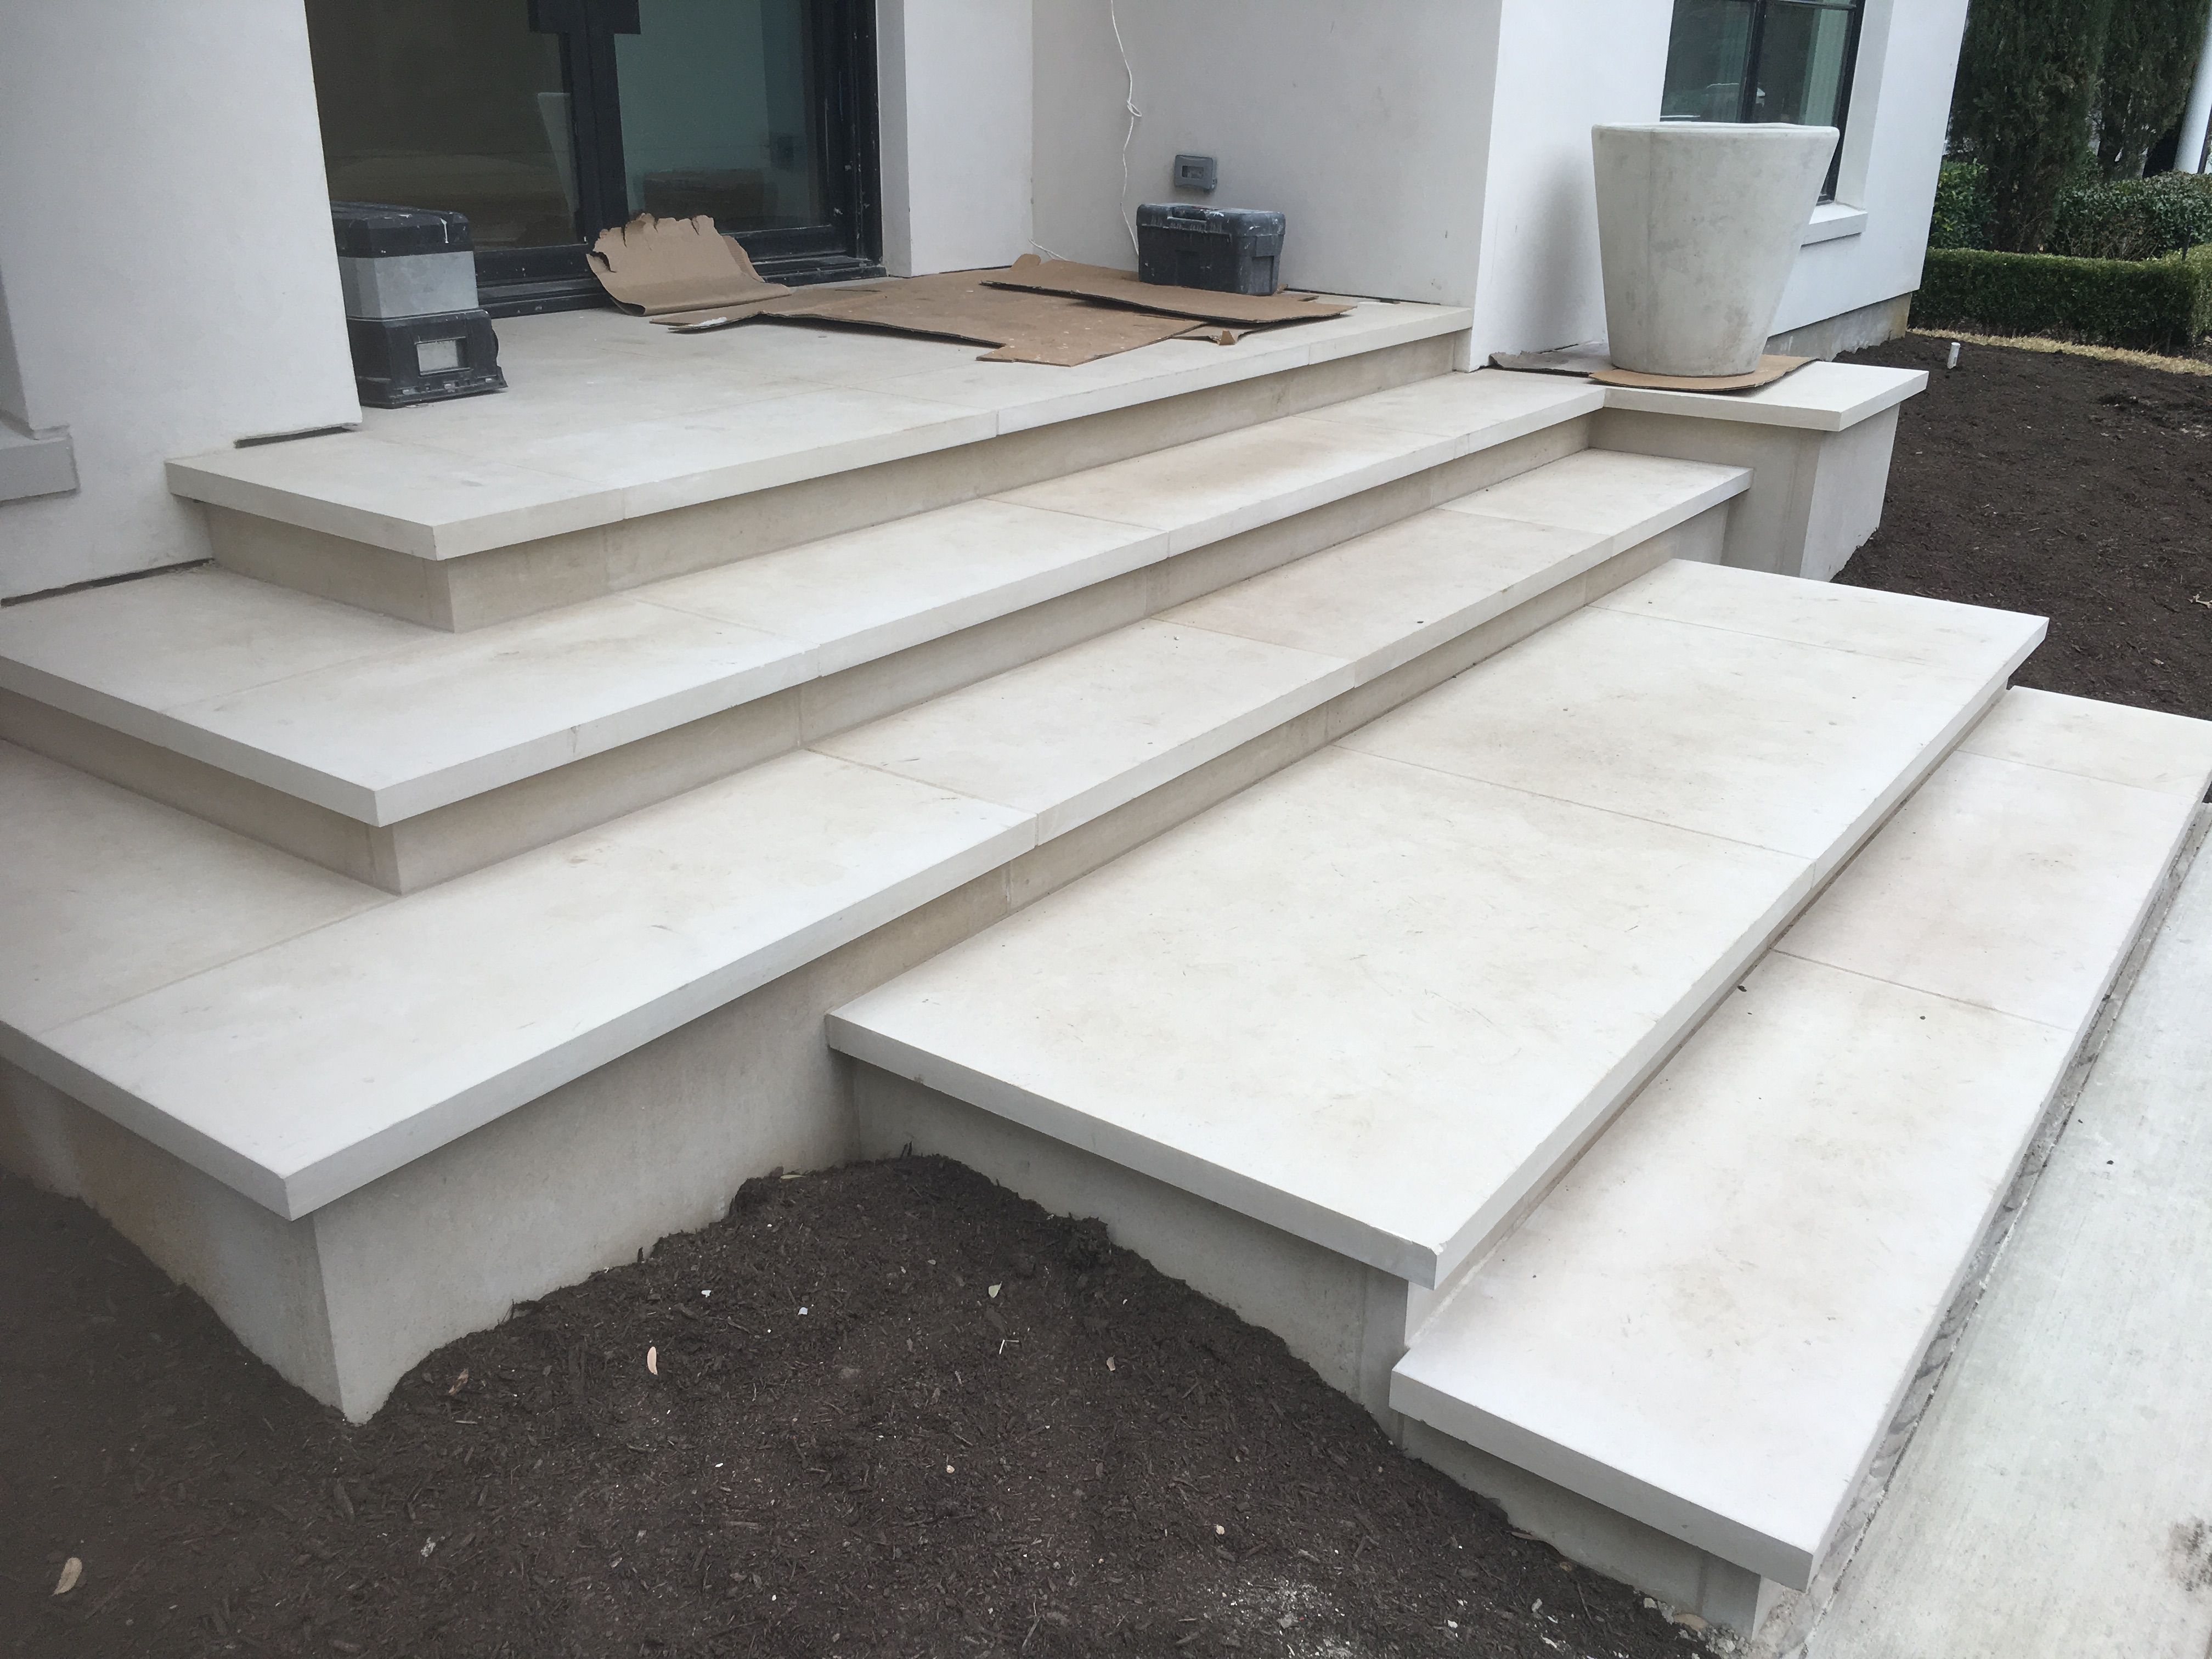 buff lueders stone as treads risers